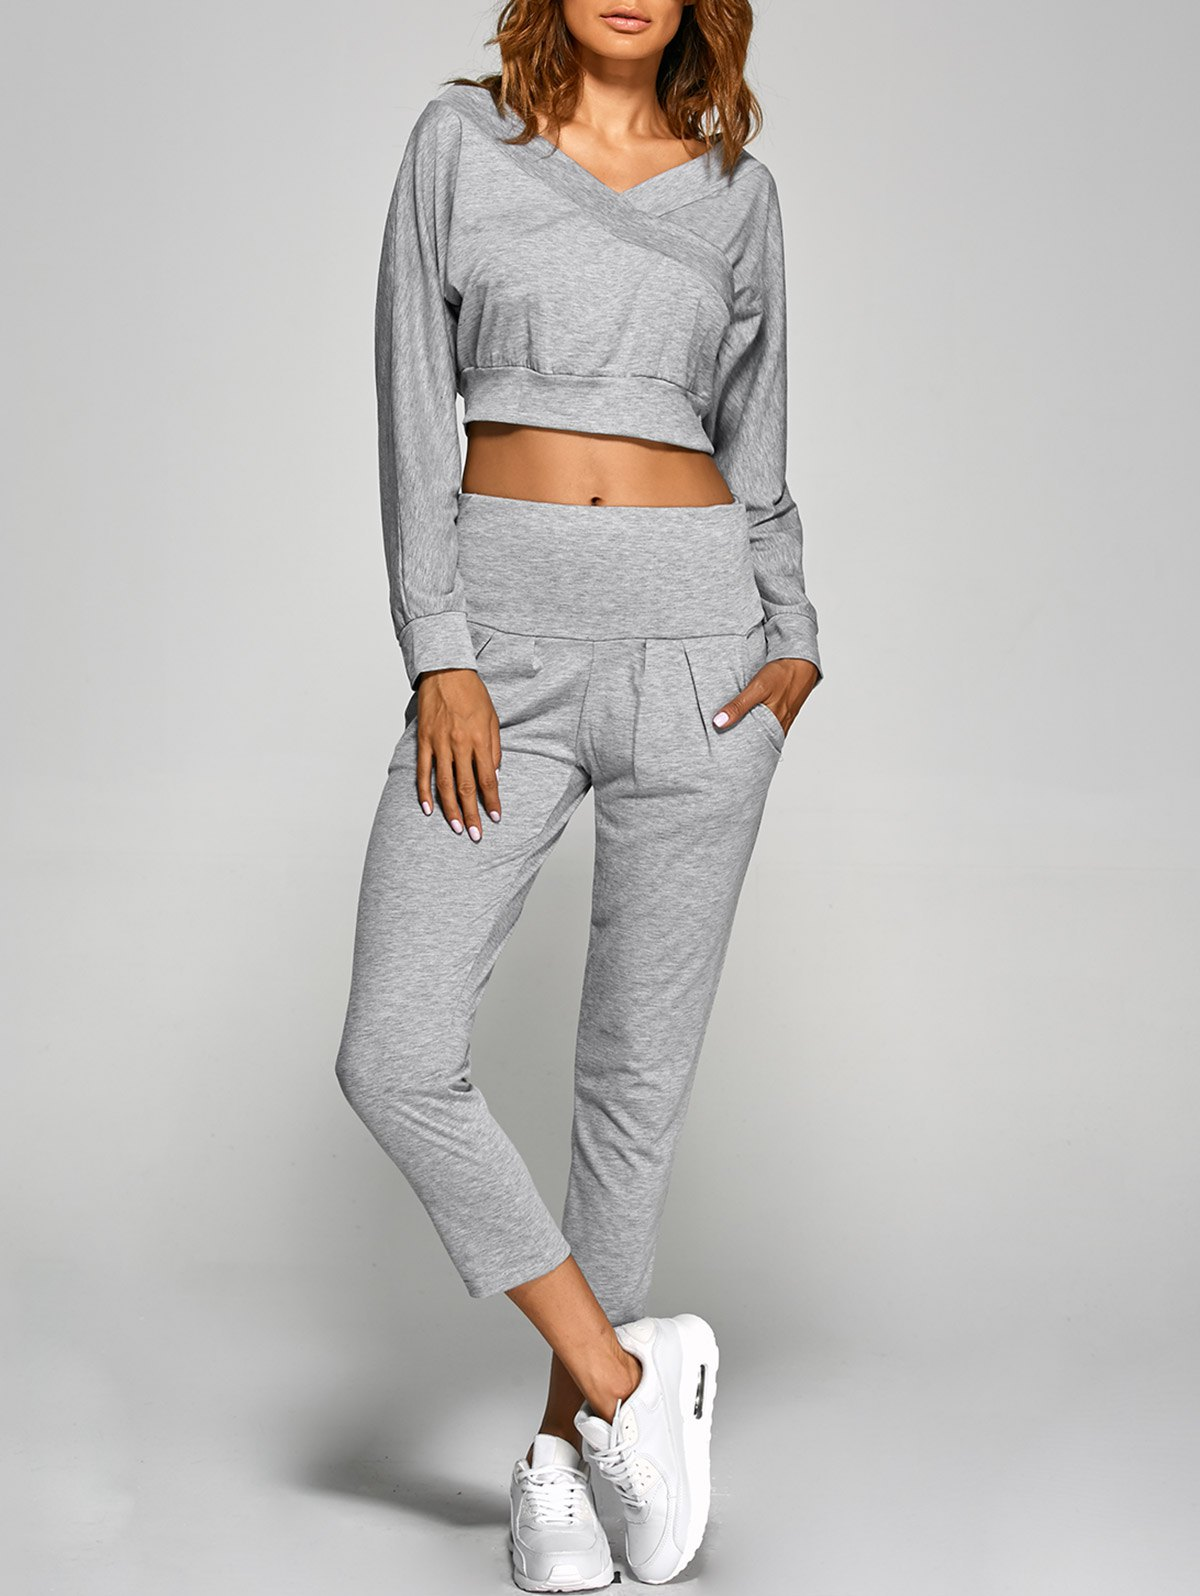 V Neck Back Cut Out Crop Top With Pants Twinset